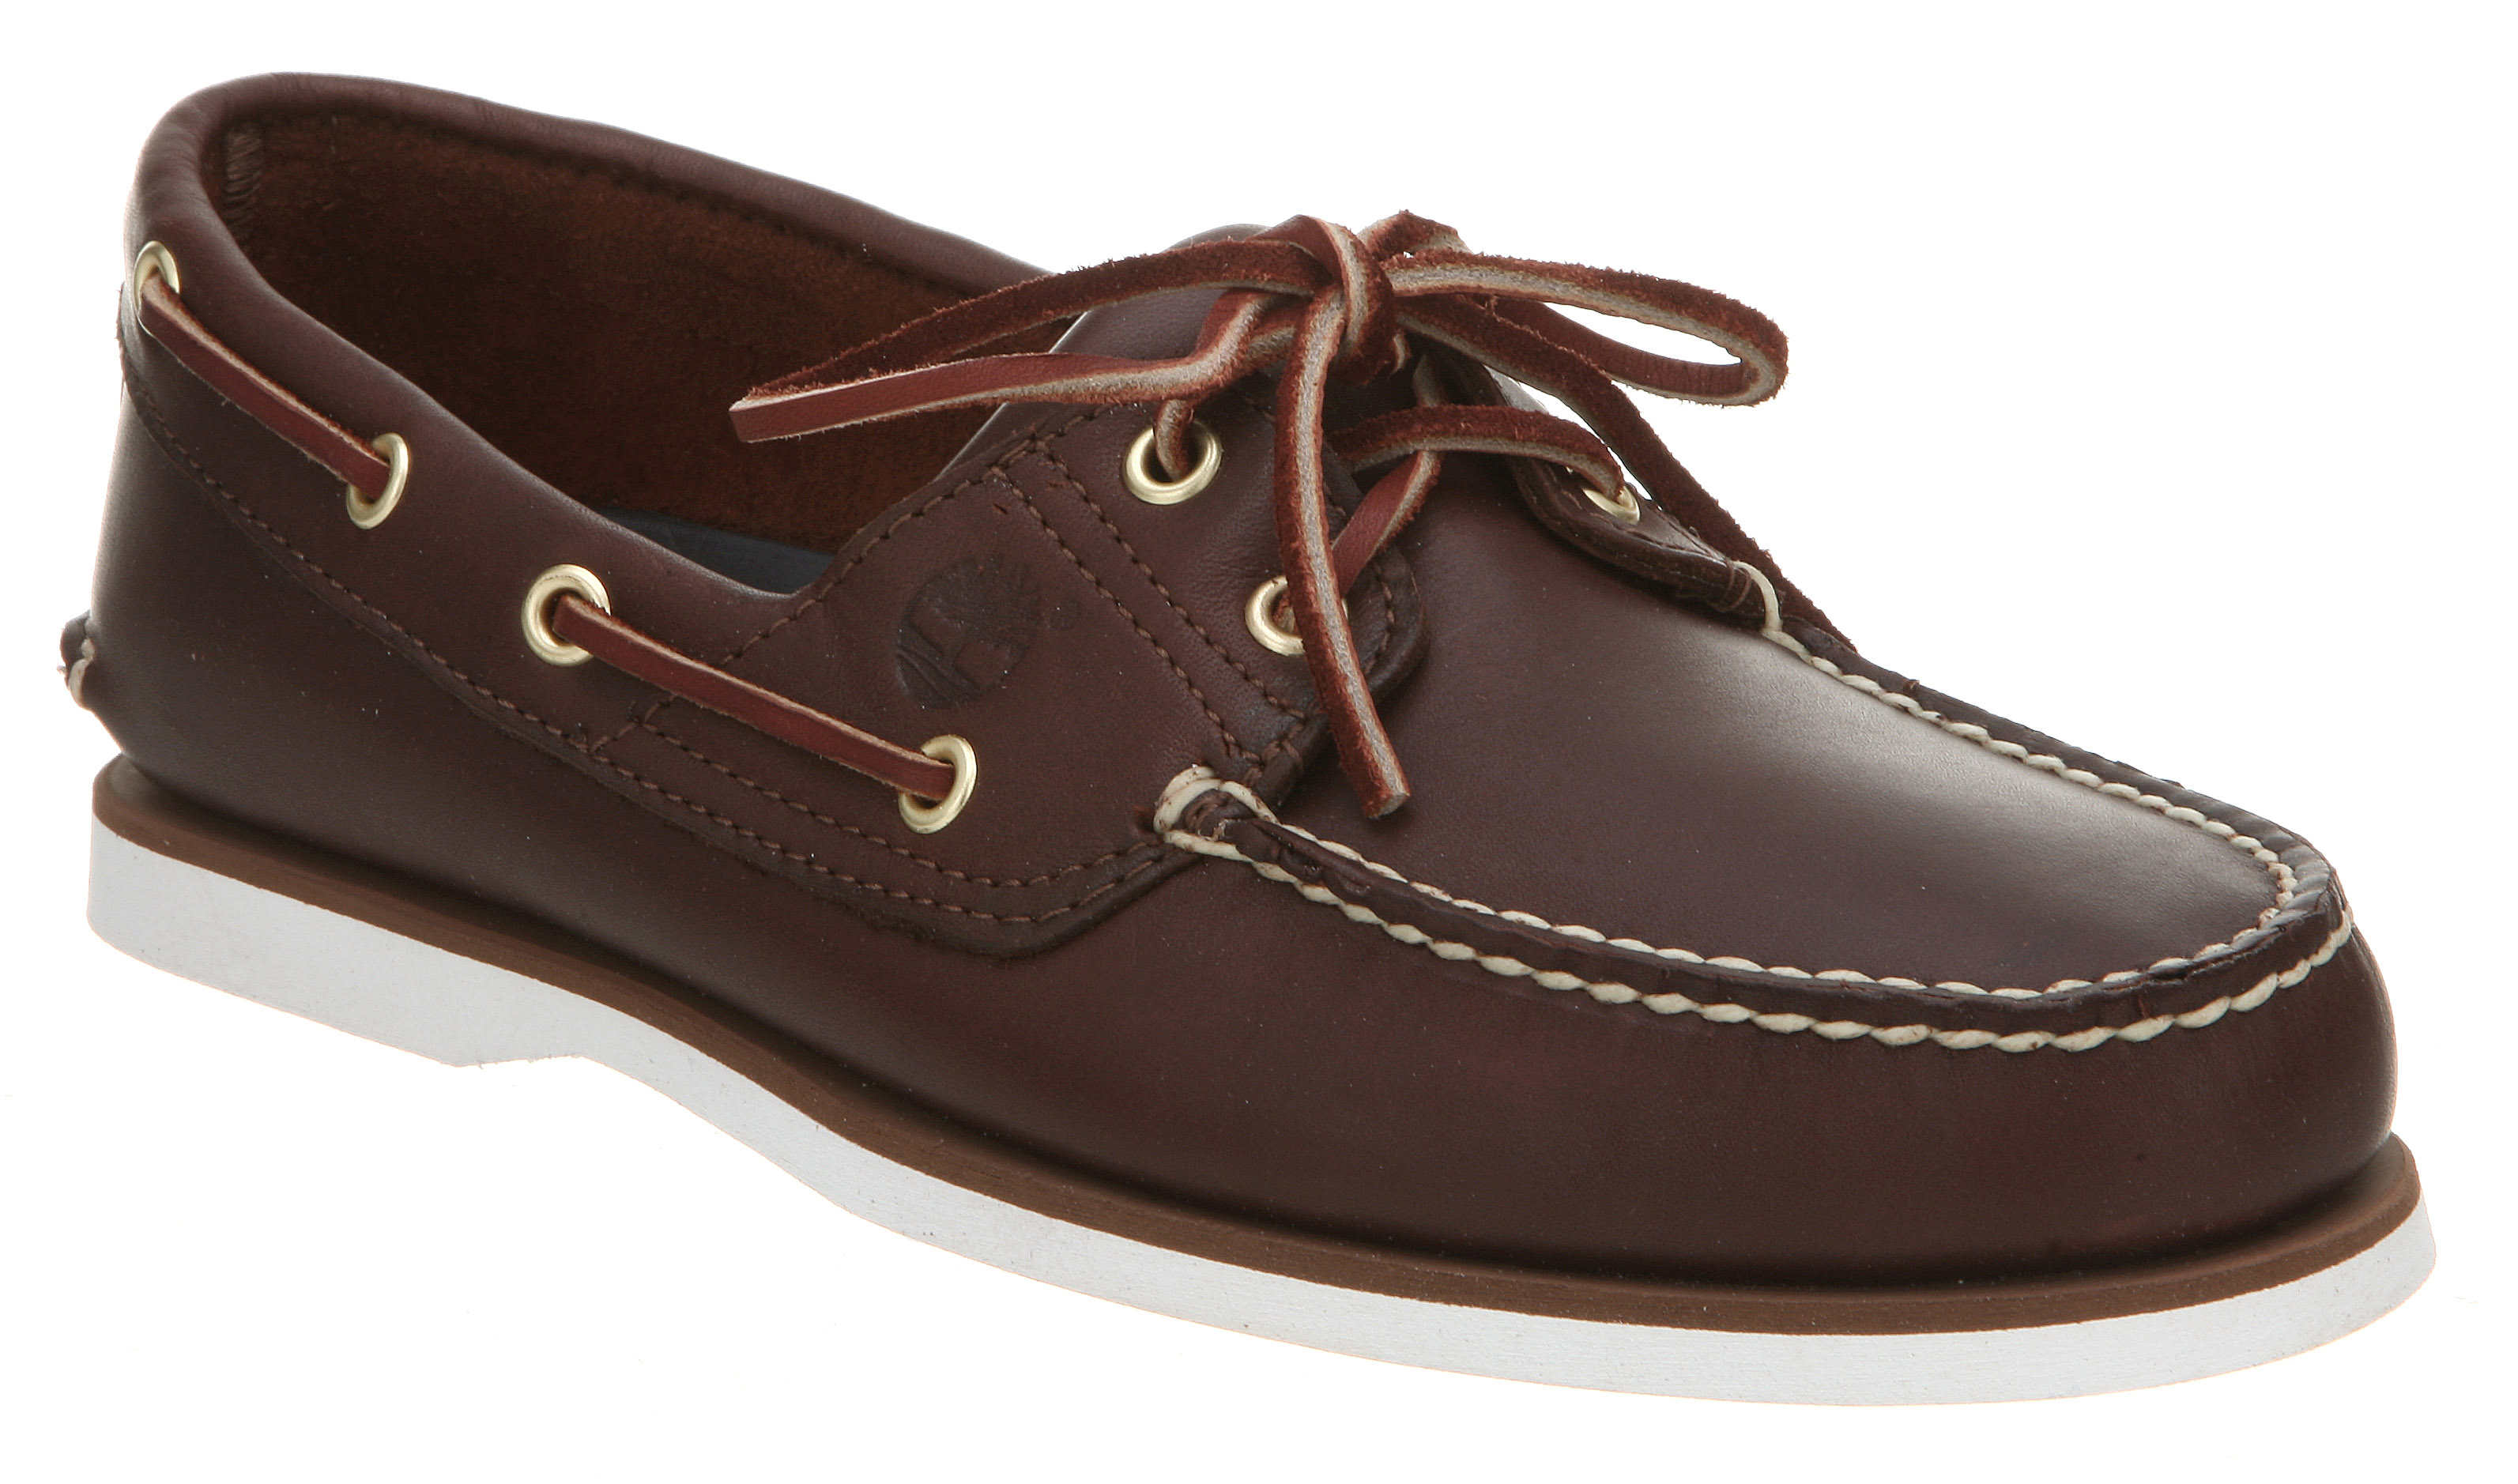 timberland boat shoes brown aranjackson co uk